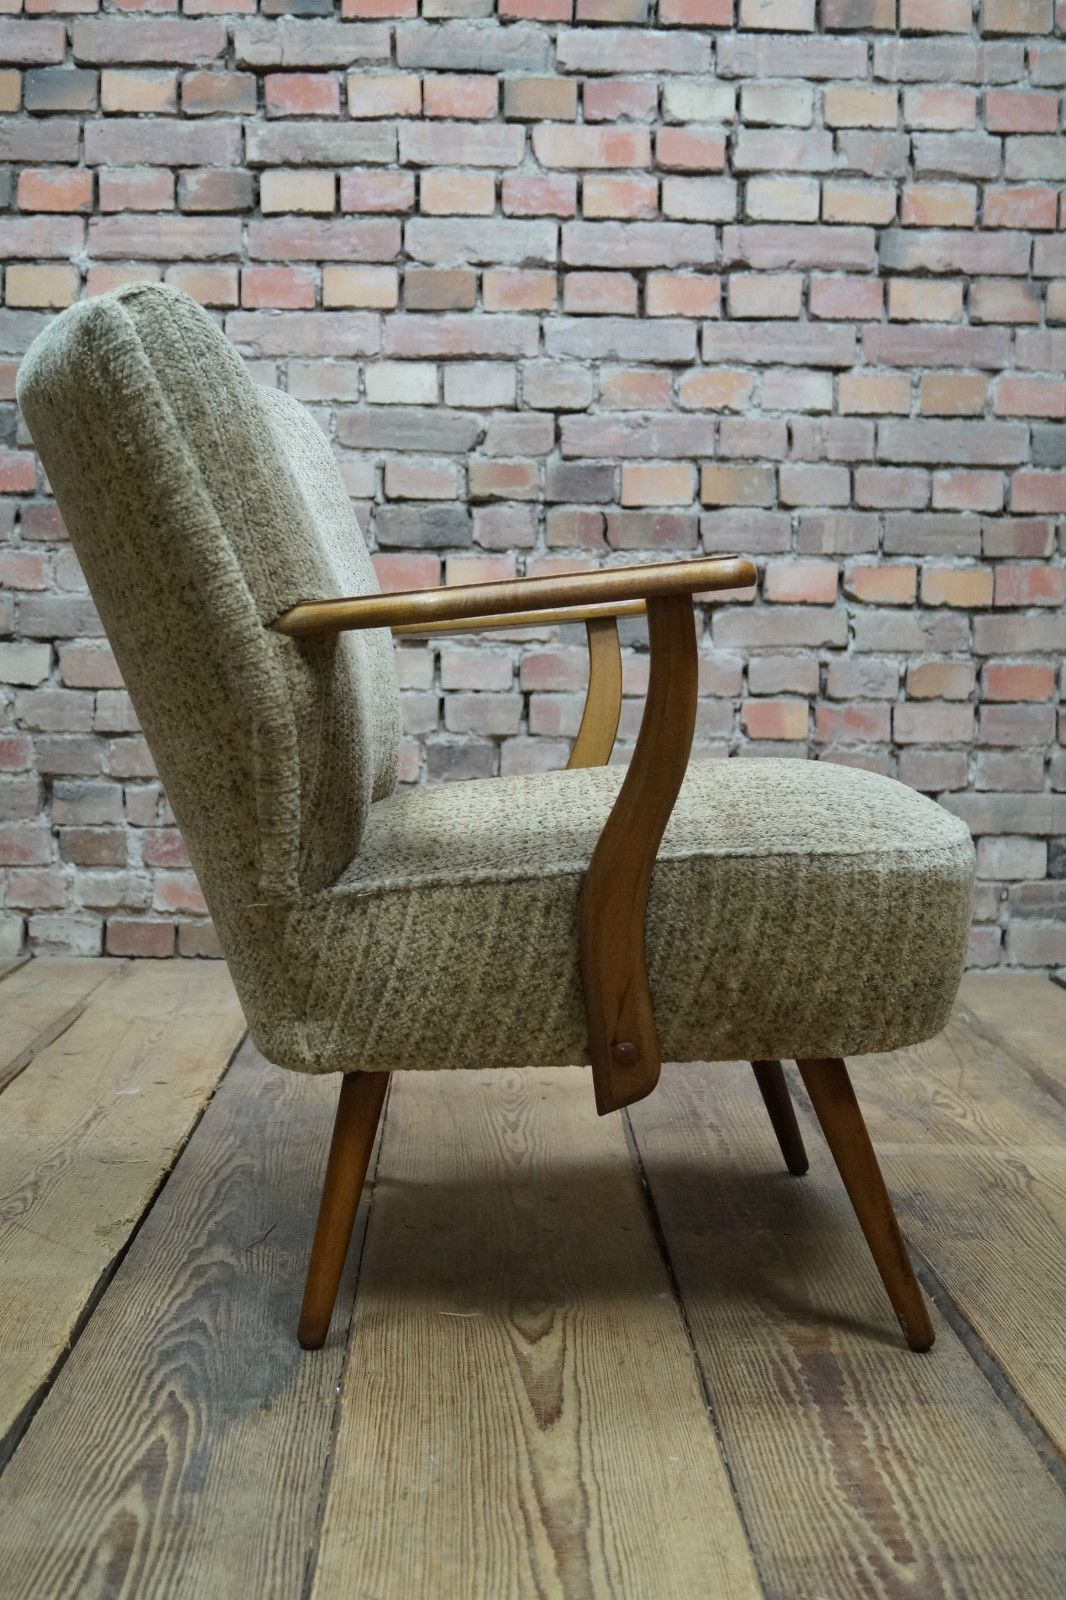 Details about 60s Rockabilly COCKTAIL ARM CHAIR